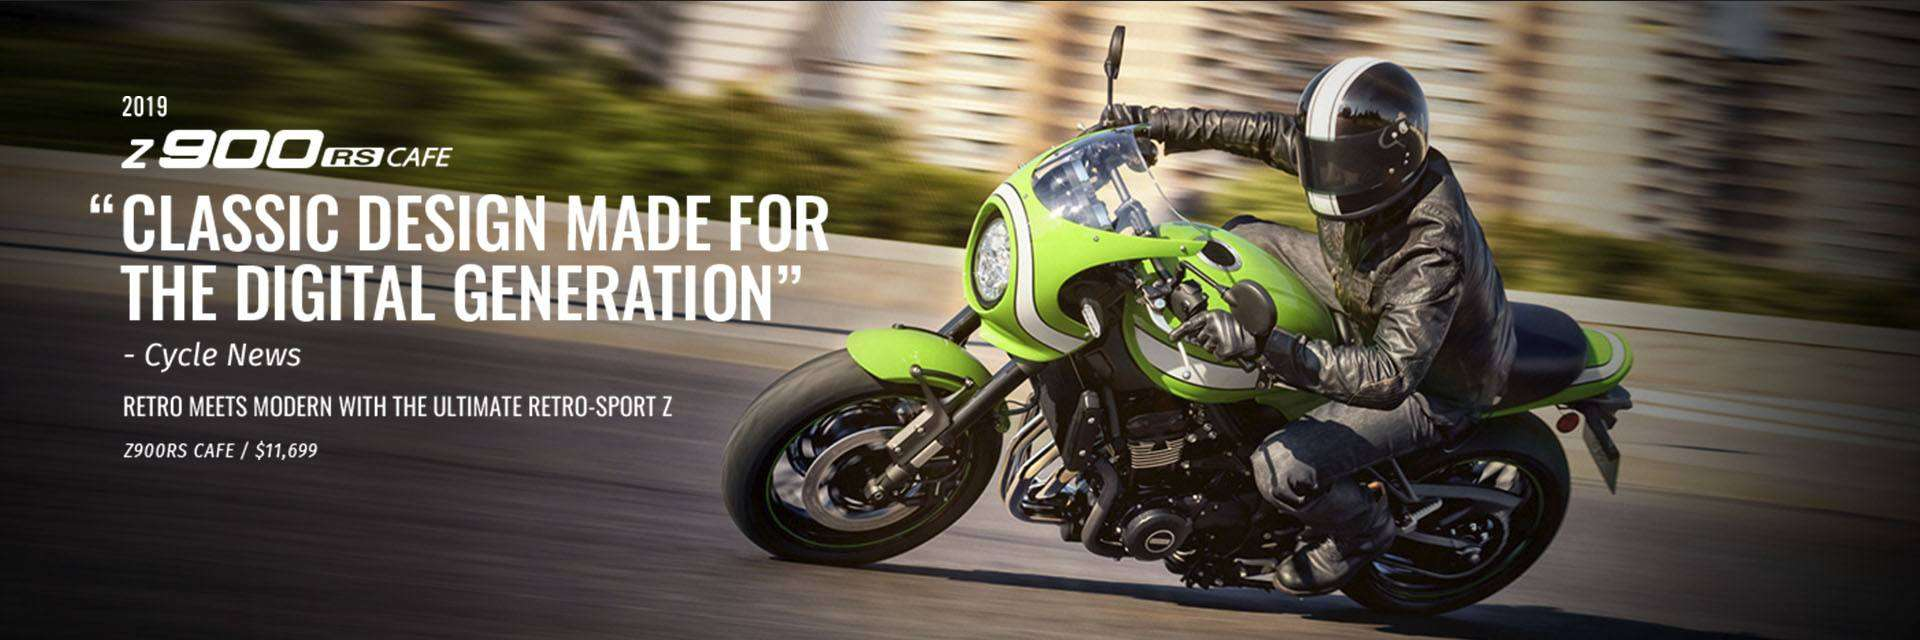 Shop Kawasaki Z Series Motorcycles for sale at Suzuki City in Biloxi, MS